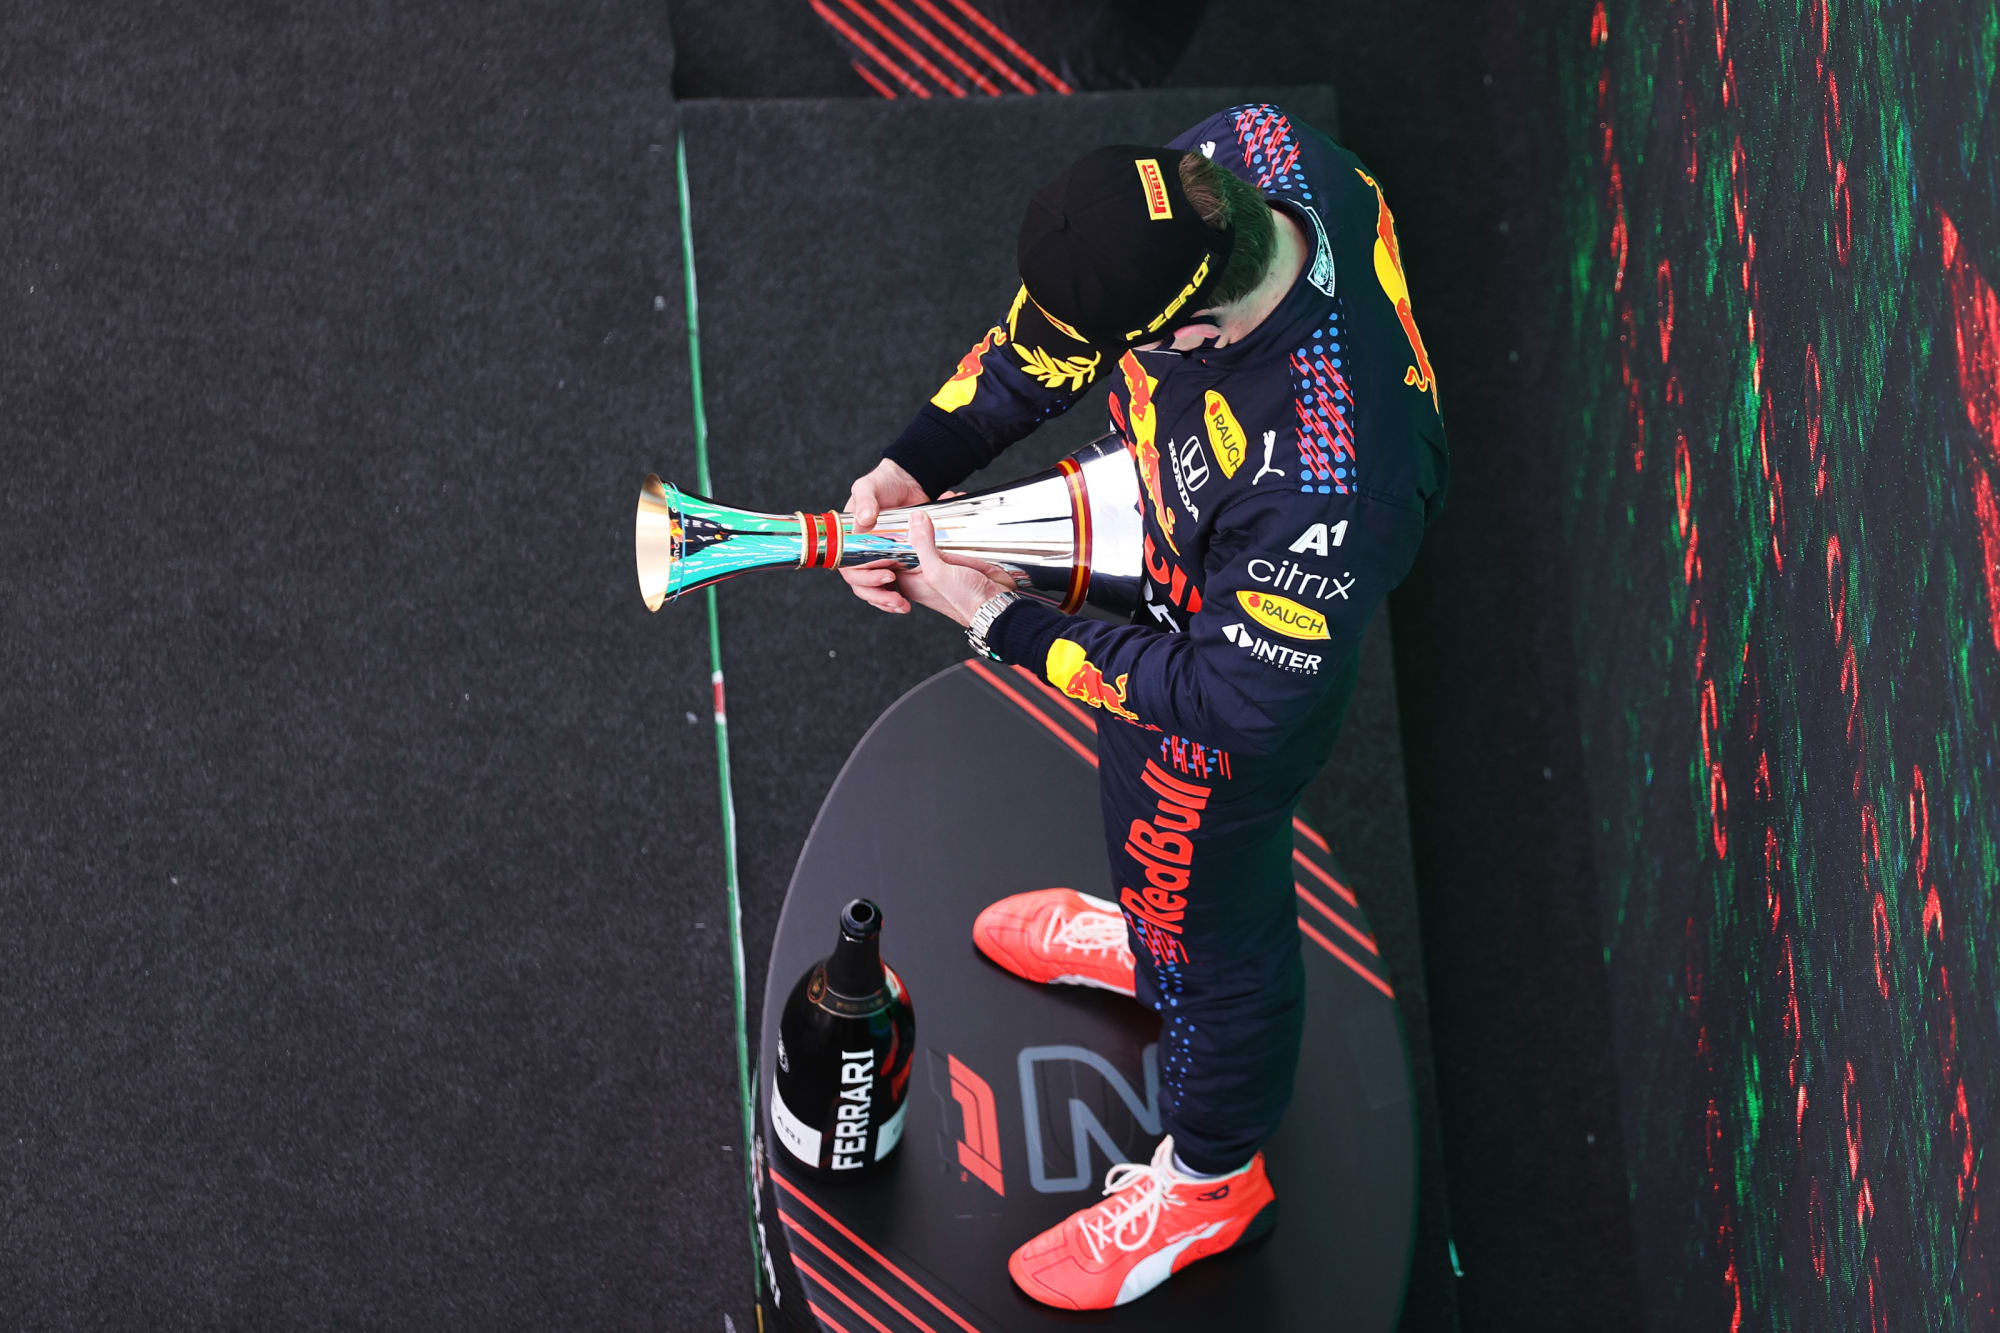 Formula 1: Why Red Bull cannot operate on Mercedes' level yet